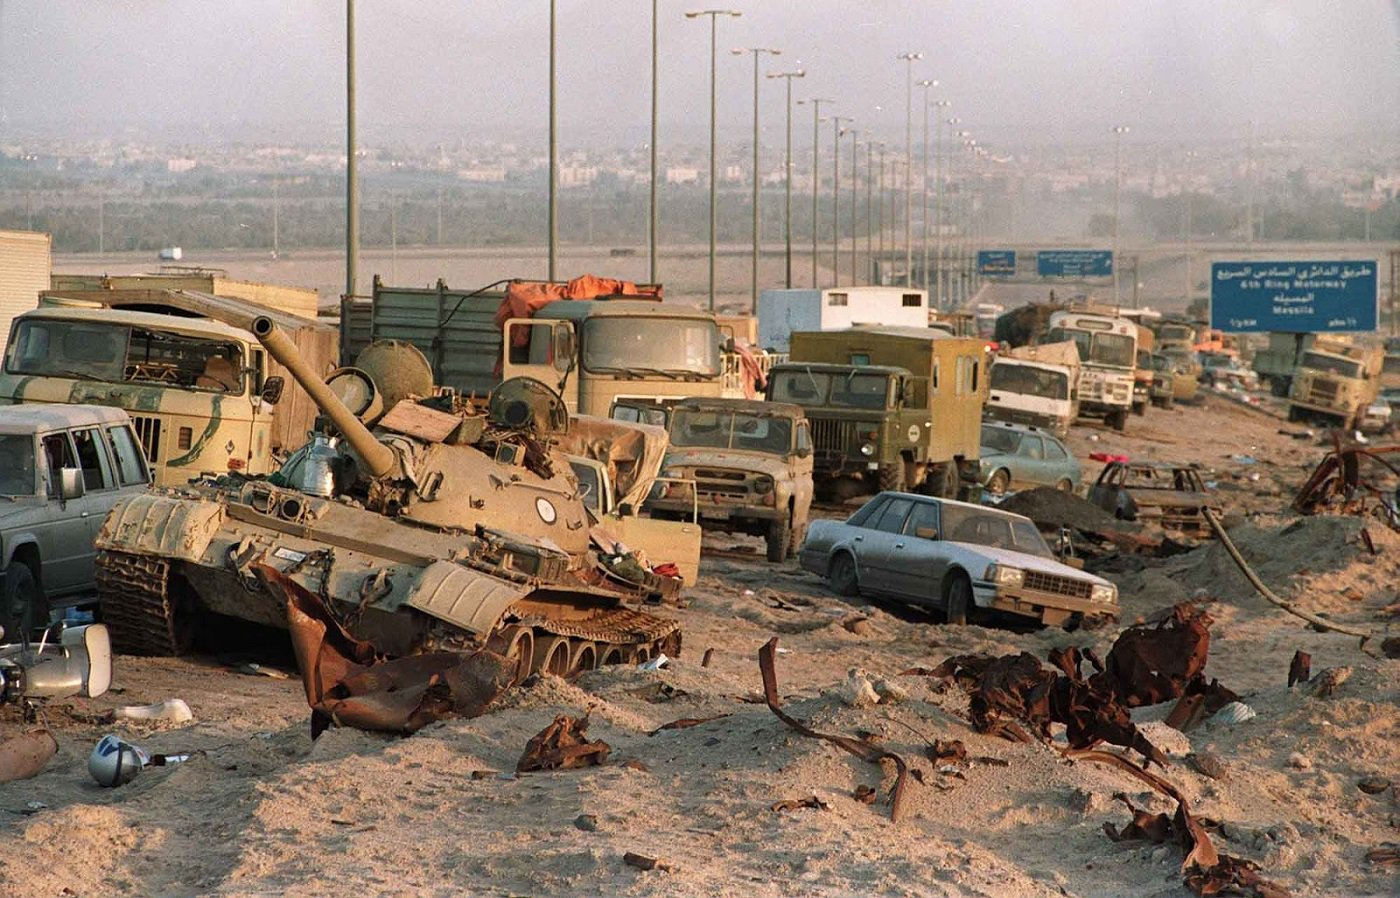 george-hw-bushs-complicity-in-the-1991-highway-of-death-massacre.-8211-global-research